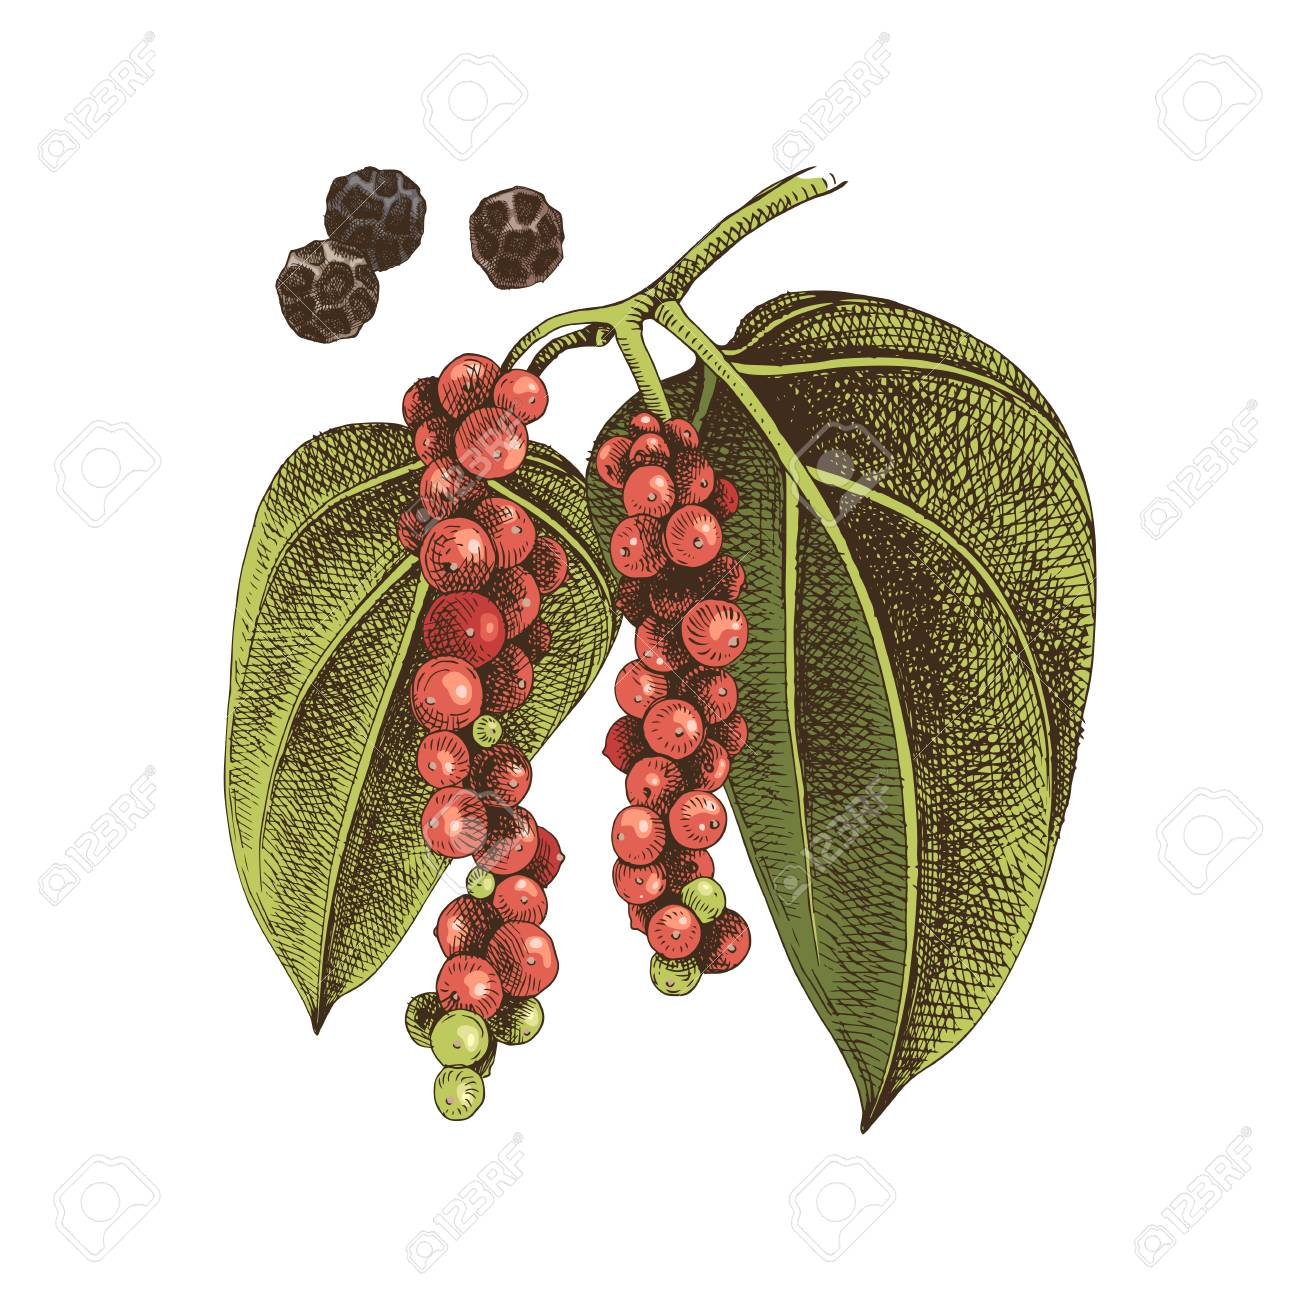 Hand drawn black pepper plant. Colorful vector illustration in retro style - 128182561